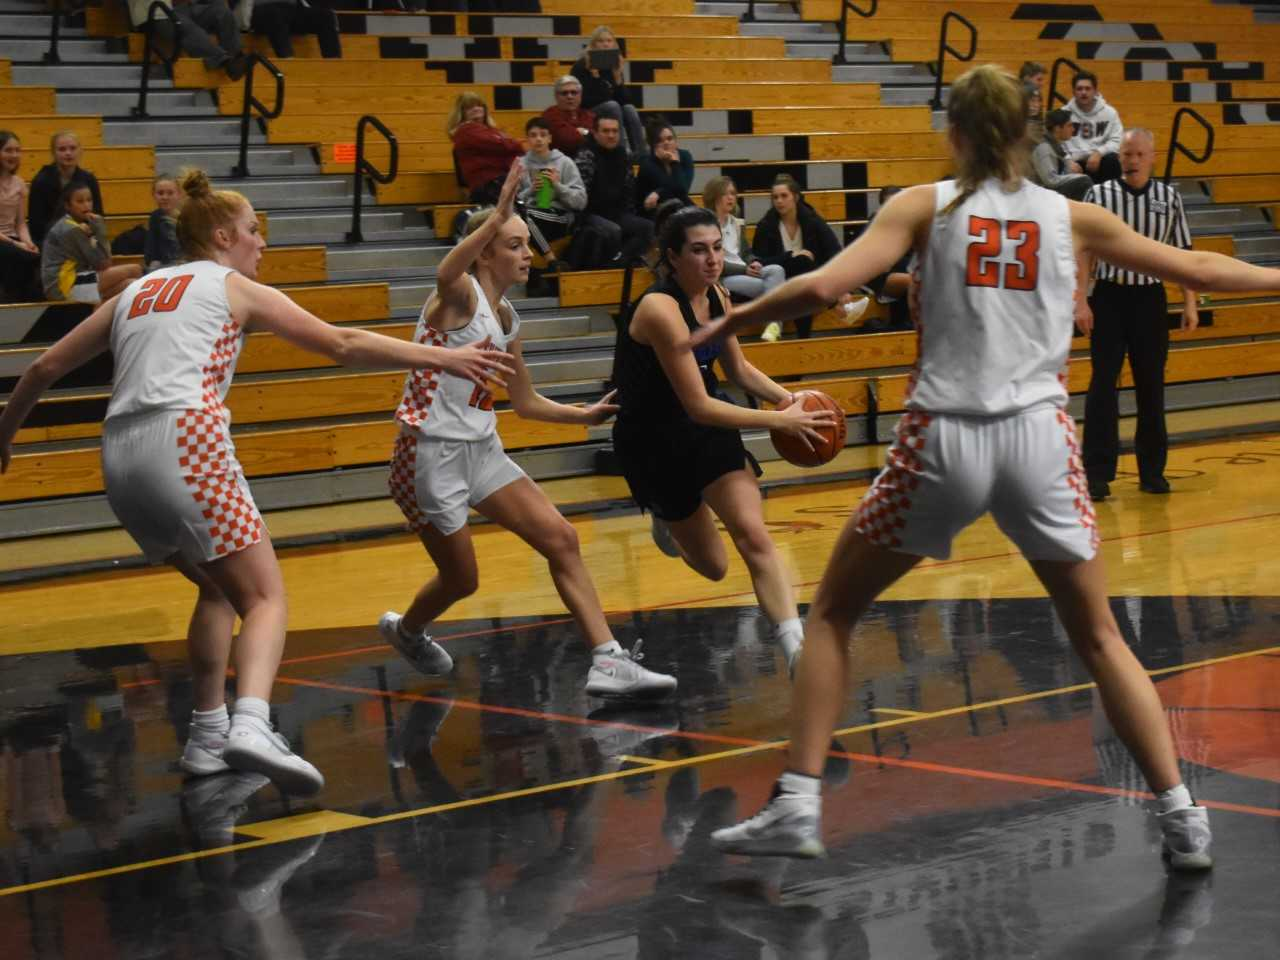 Silverton posts Riley Traeger (20) and Truitt Reilly (23) shut down Churchill drives Wednesday. (Photo by Jeremy McDonald)